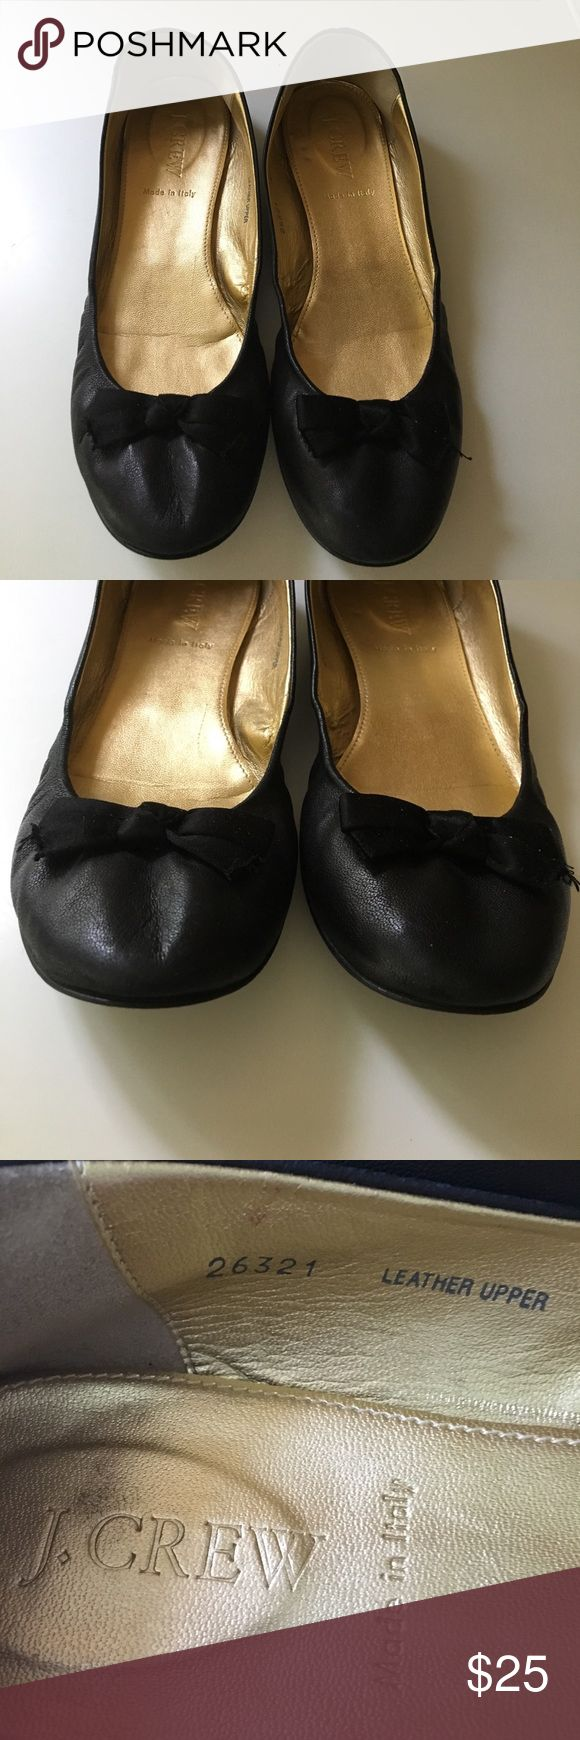 CLASSIC Black soft leather ballet flats with bow Just had foot surgery can't wear my favorite shoes Priced for quick sale Perfect for summer classic black ballet flats Great used condition jcrew Shoes Flats & Loafers